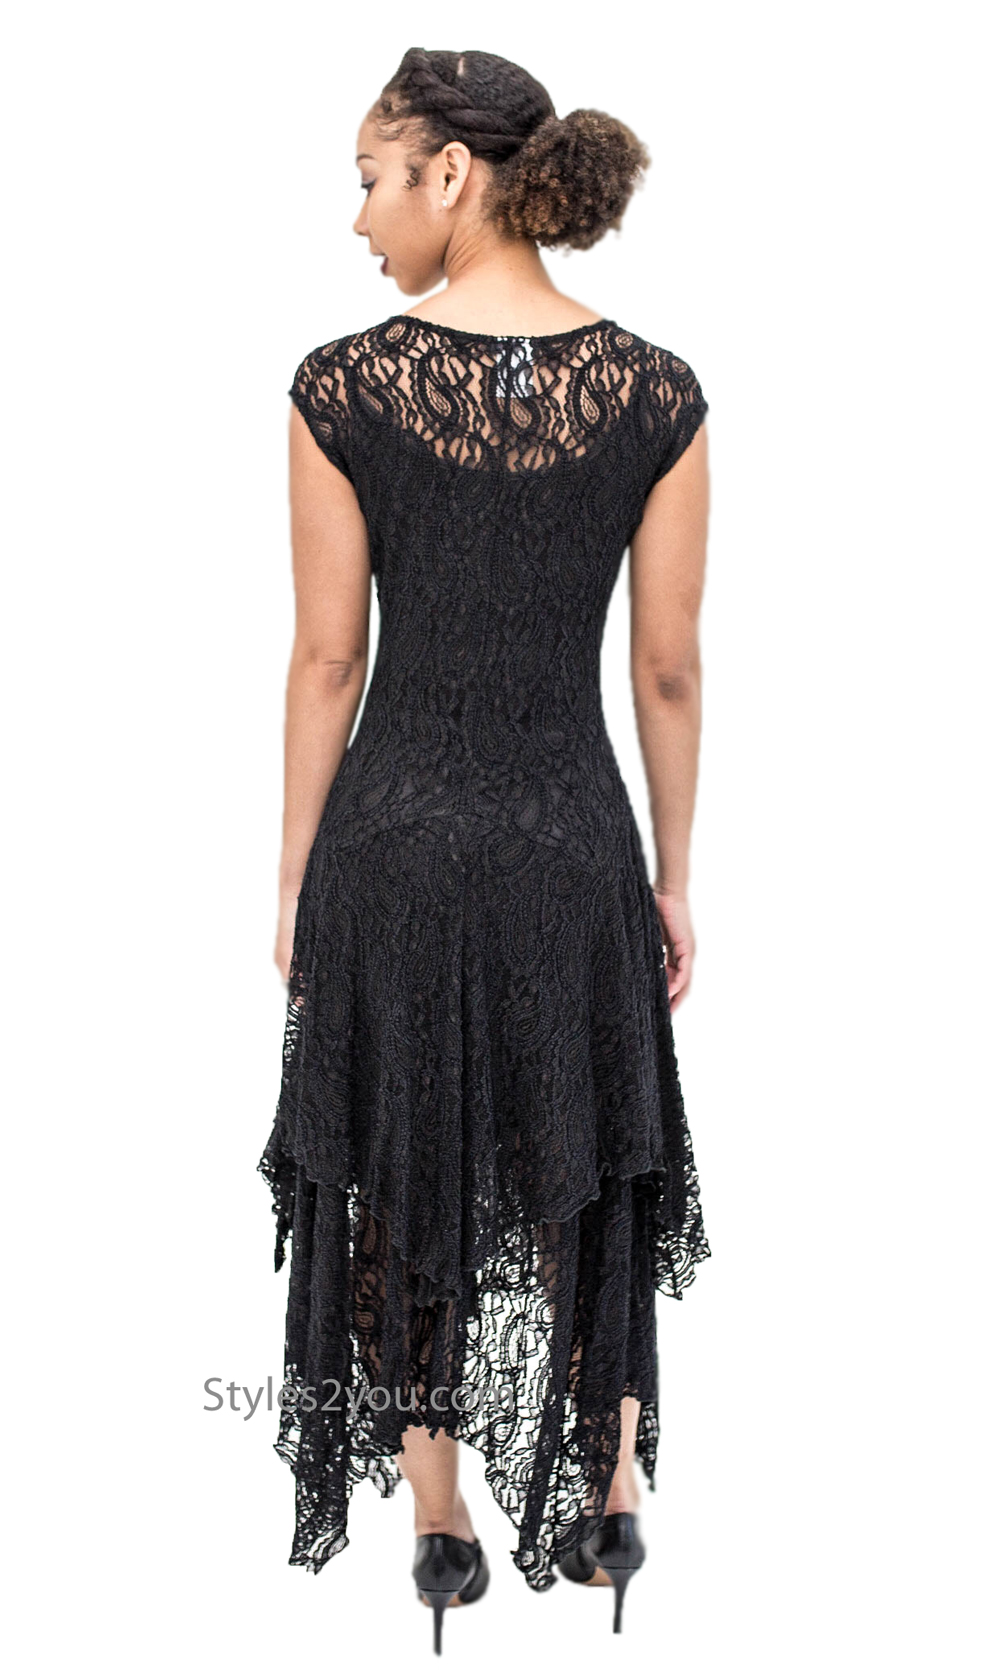 bdd4ed162a Abigail Layered All Lace Dress With Slip In Black Verducci Dress Verducci  Clothing Apparel Ladies lace dress vintage clothing  7958 Verducci Clothing  ...